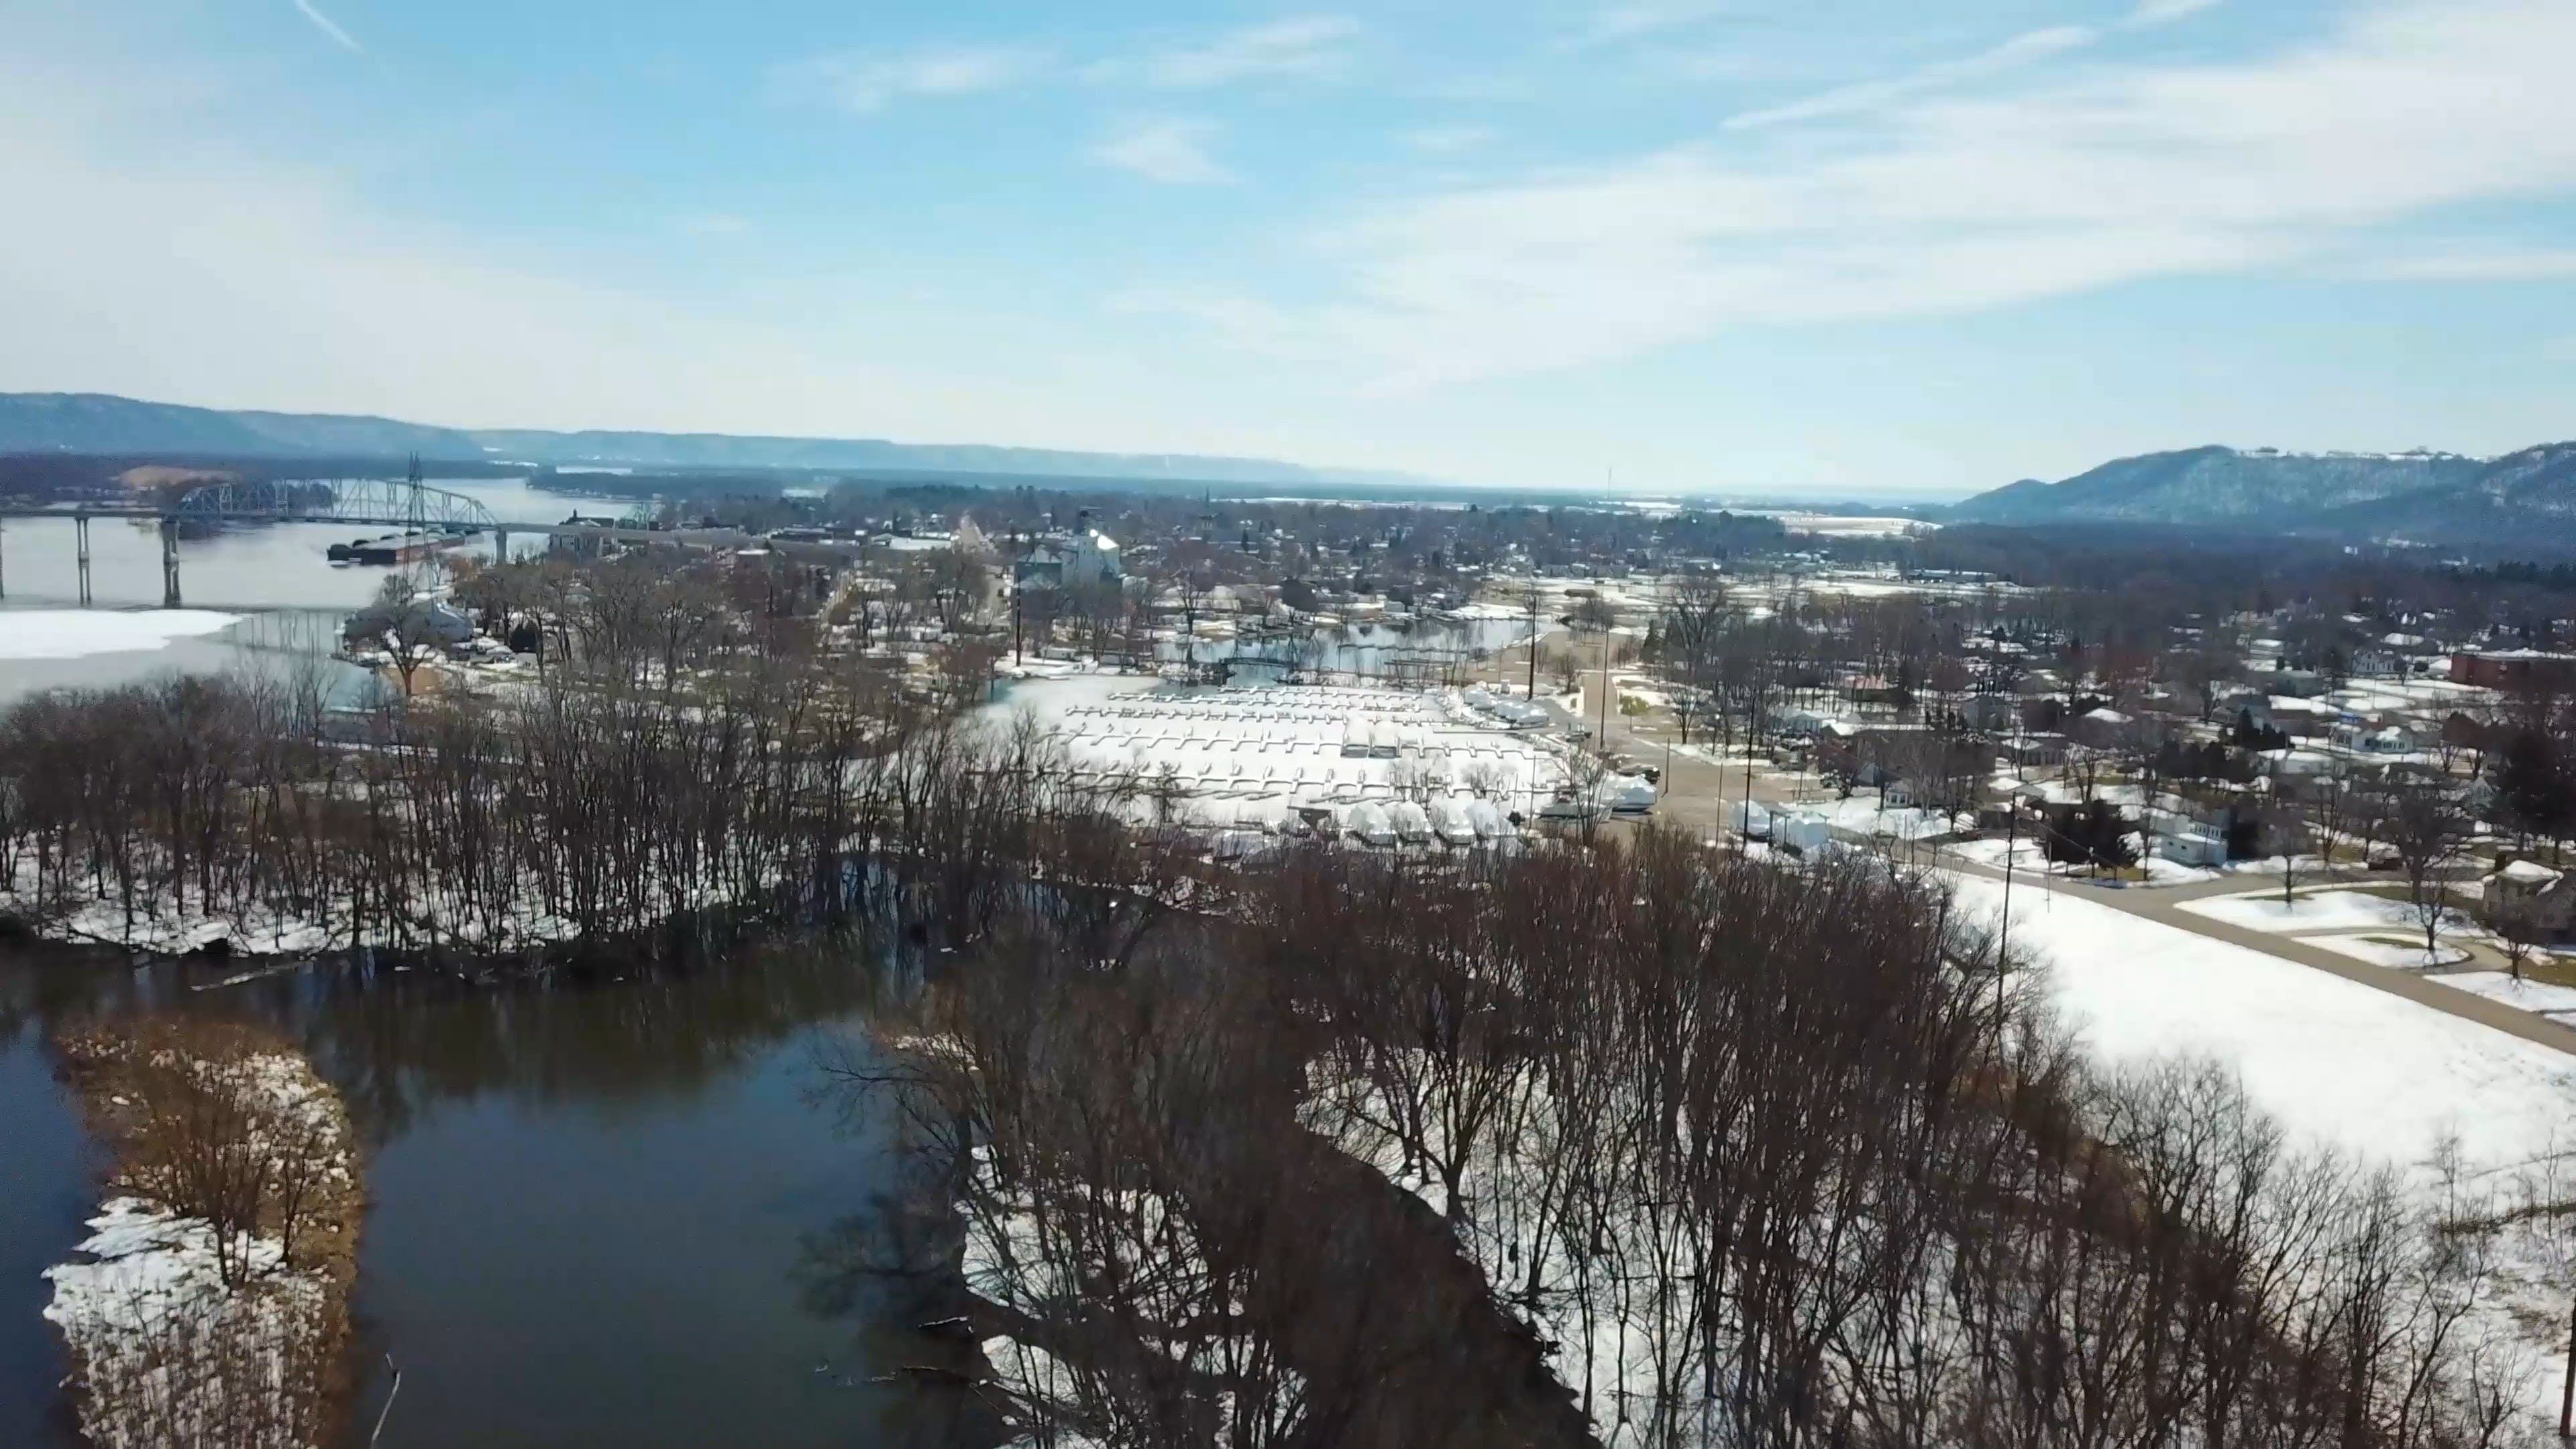 Aerial View Of A Winter Landscape